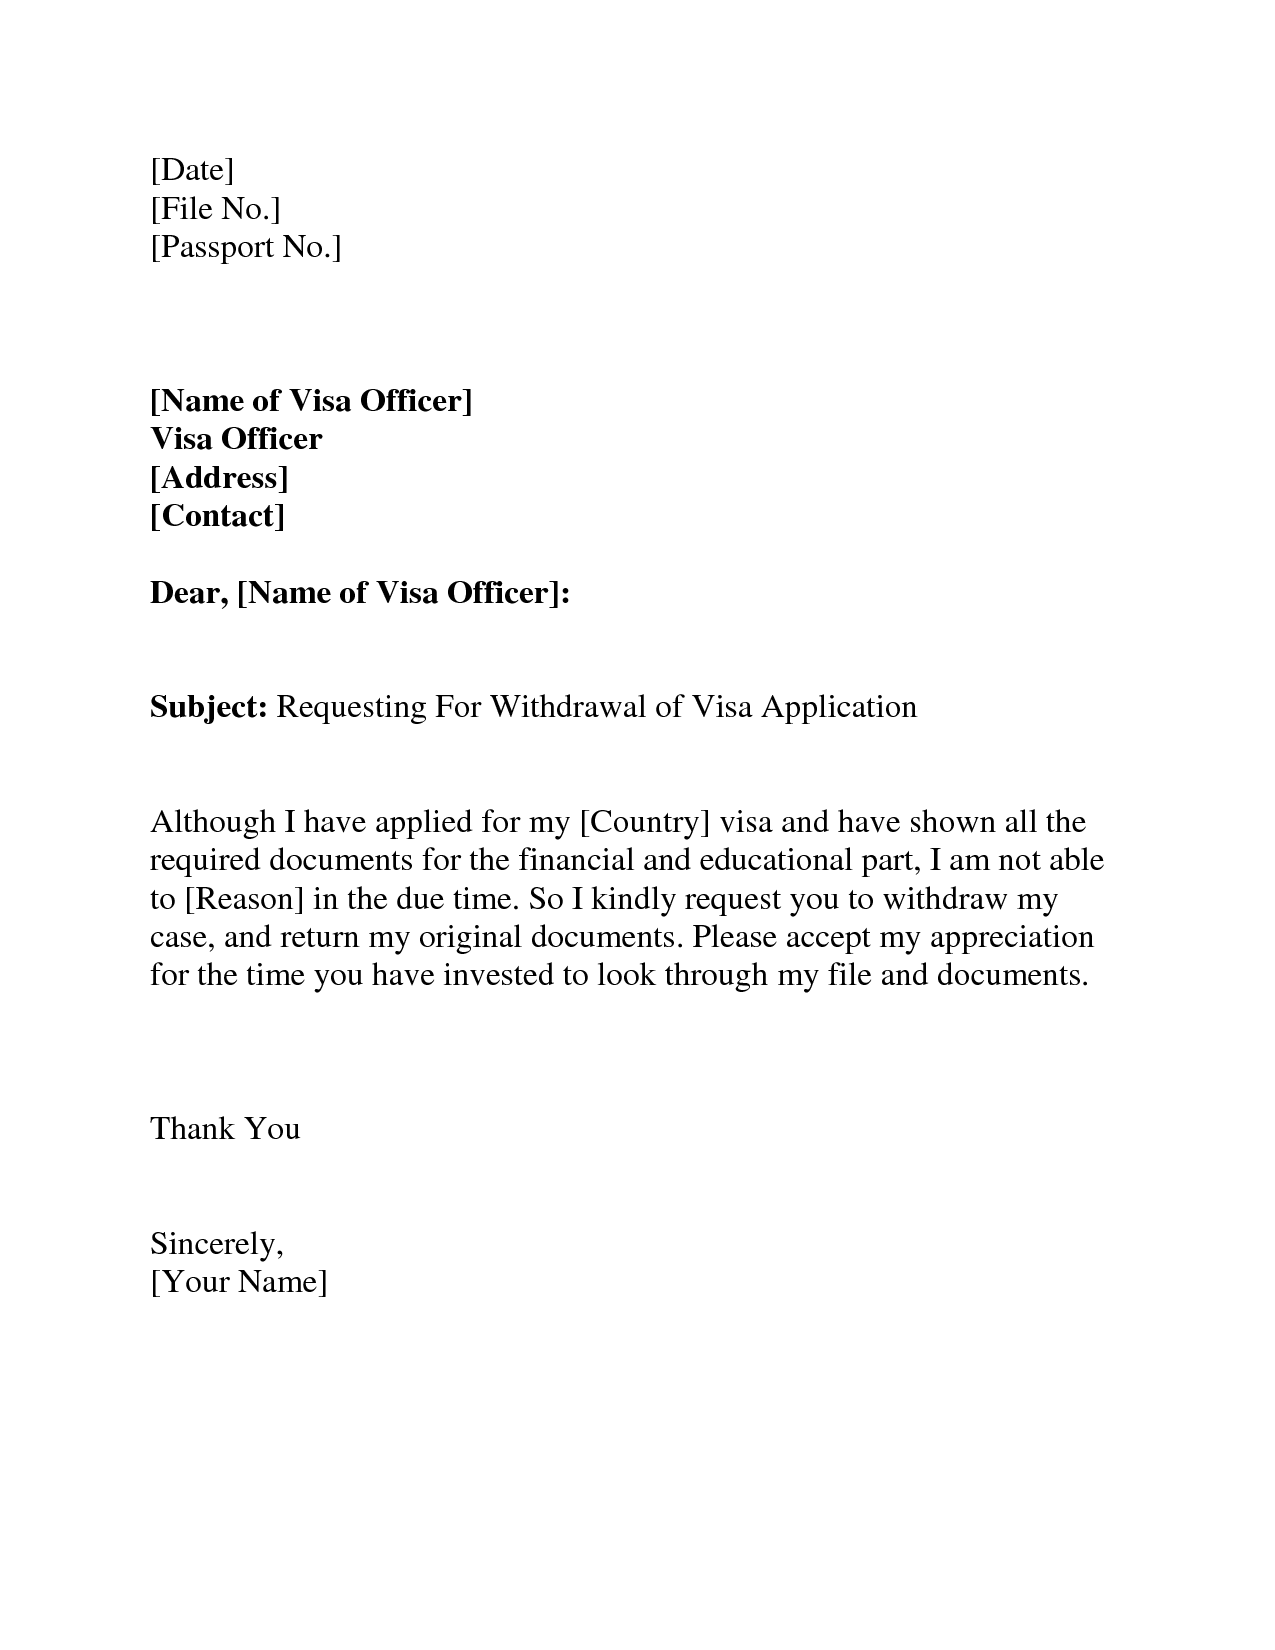 visa drawal letter request letter format letter and emailvisa visa drawal letter request letter format letter and emailvisa invitation letter to a friend example application